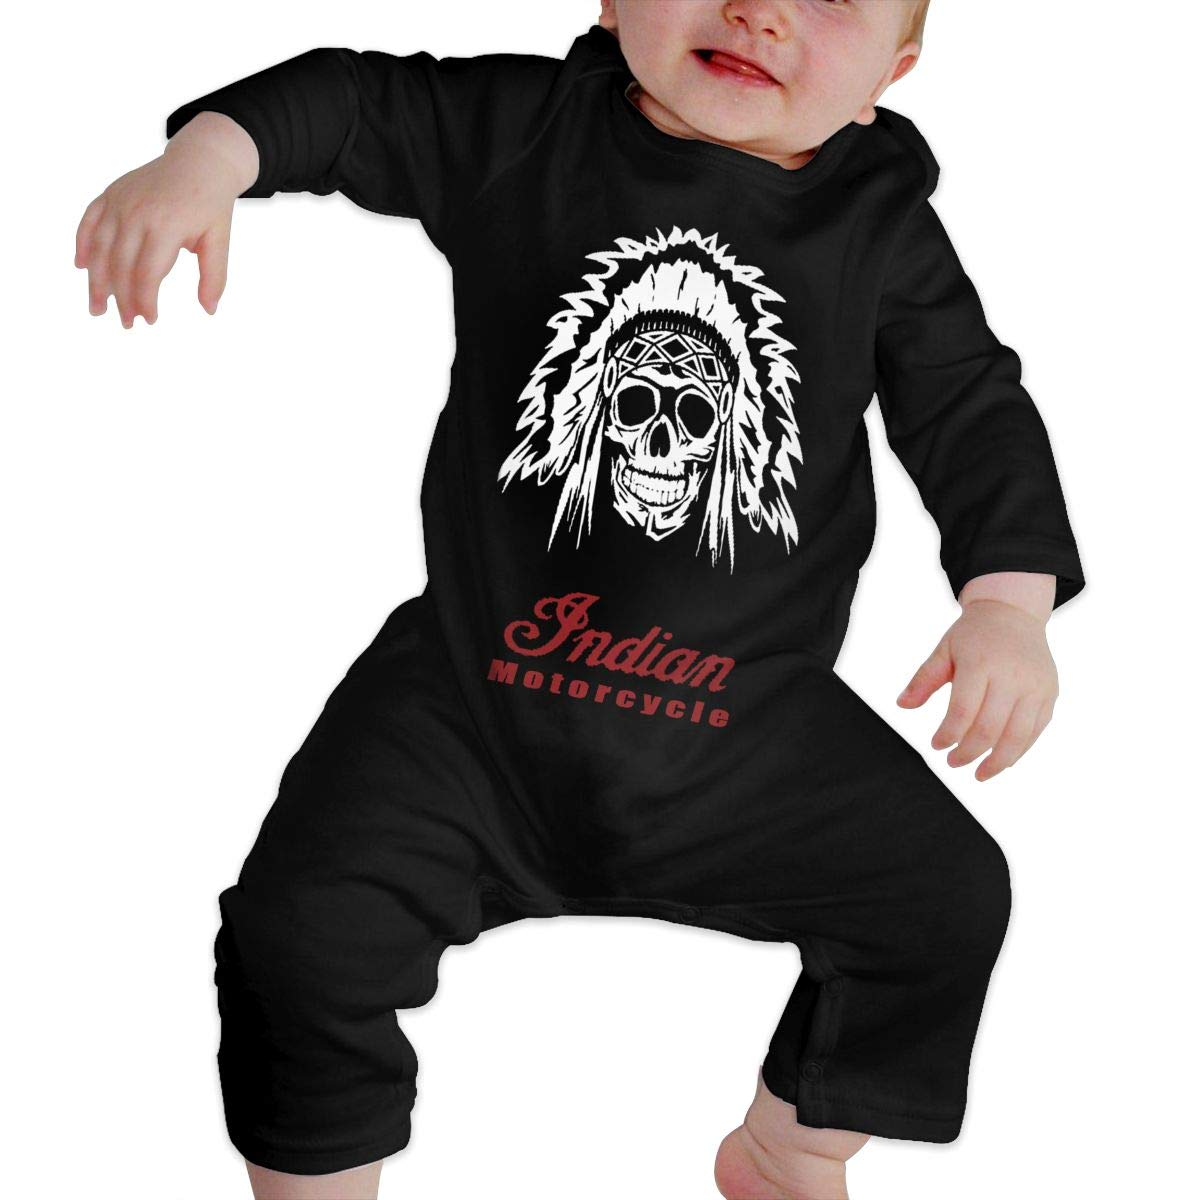 SOFIEYA Motorcycle Kids Baby Unisex Cotton Cute Long Sleeve Hooded Romper Jumpsuit Baby Crawler Clothes Black